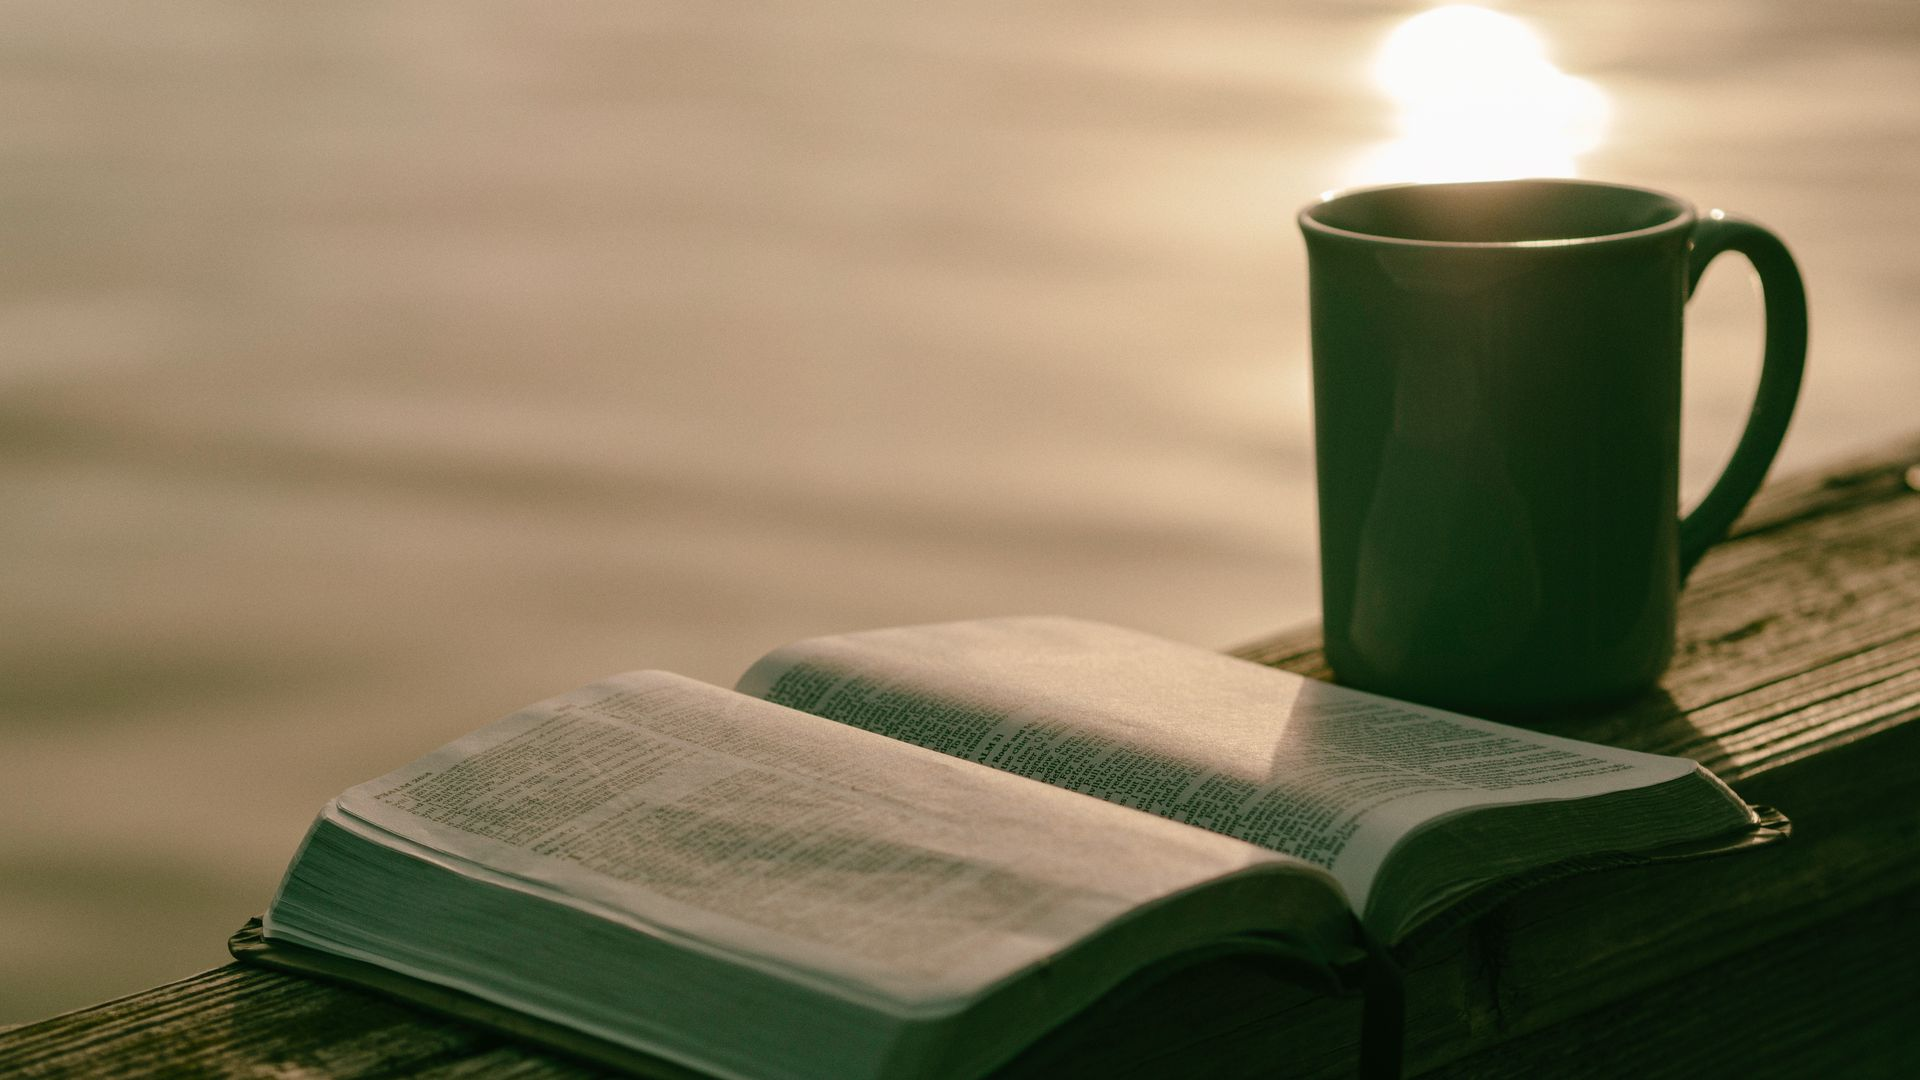 cup_book_reading_114848_1920x1080